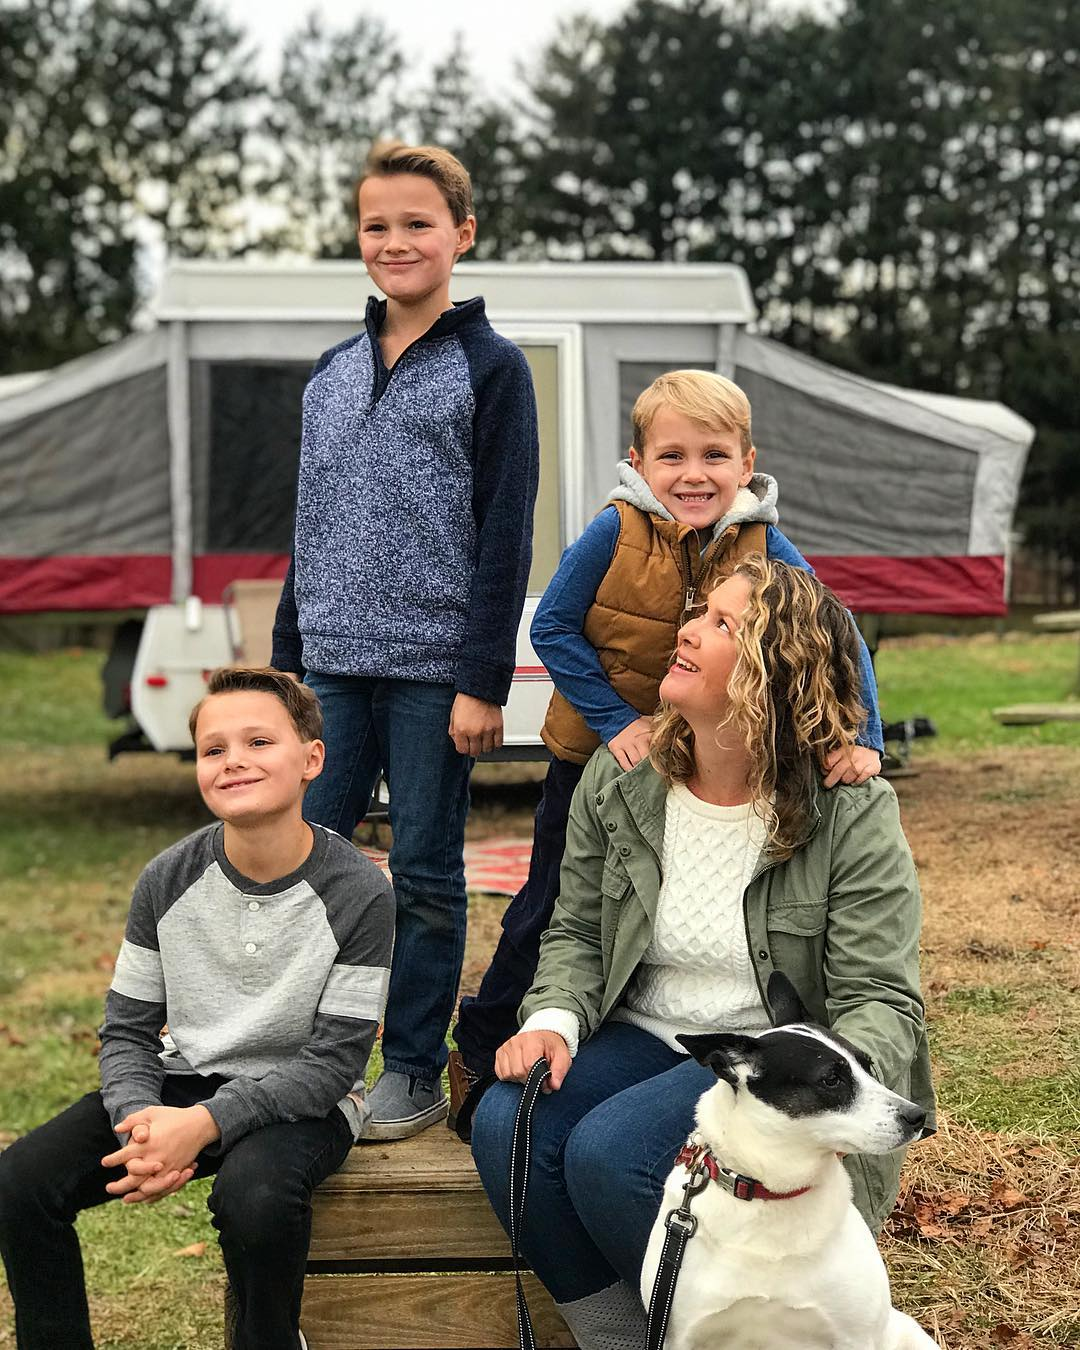 Young woman and mother looking up at three young boys smiling while camping